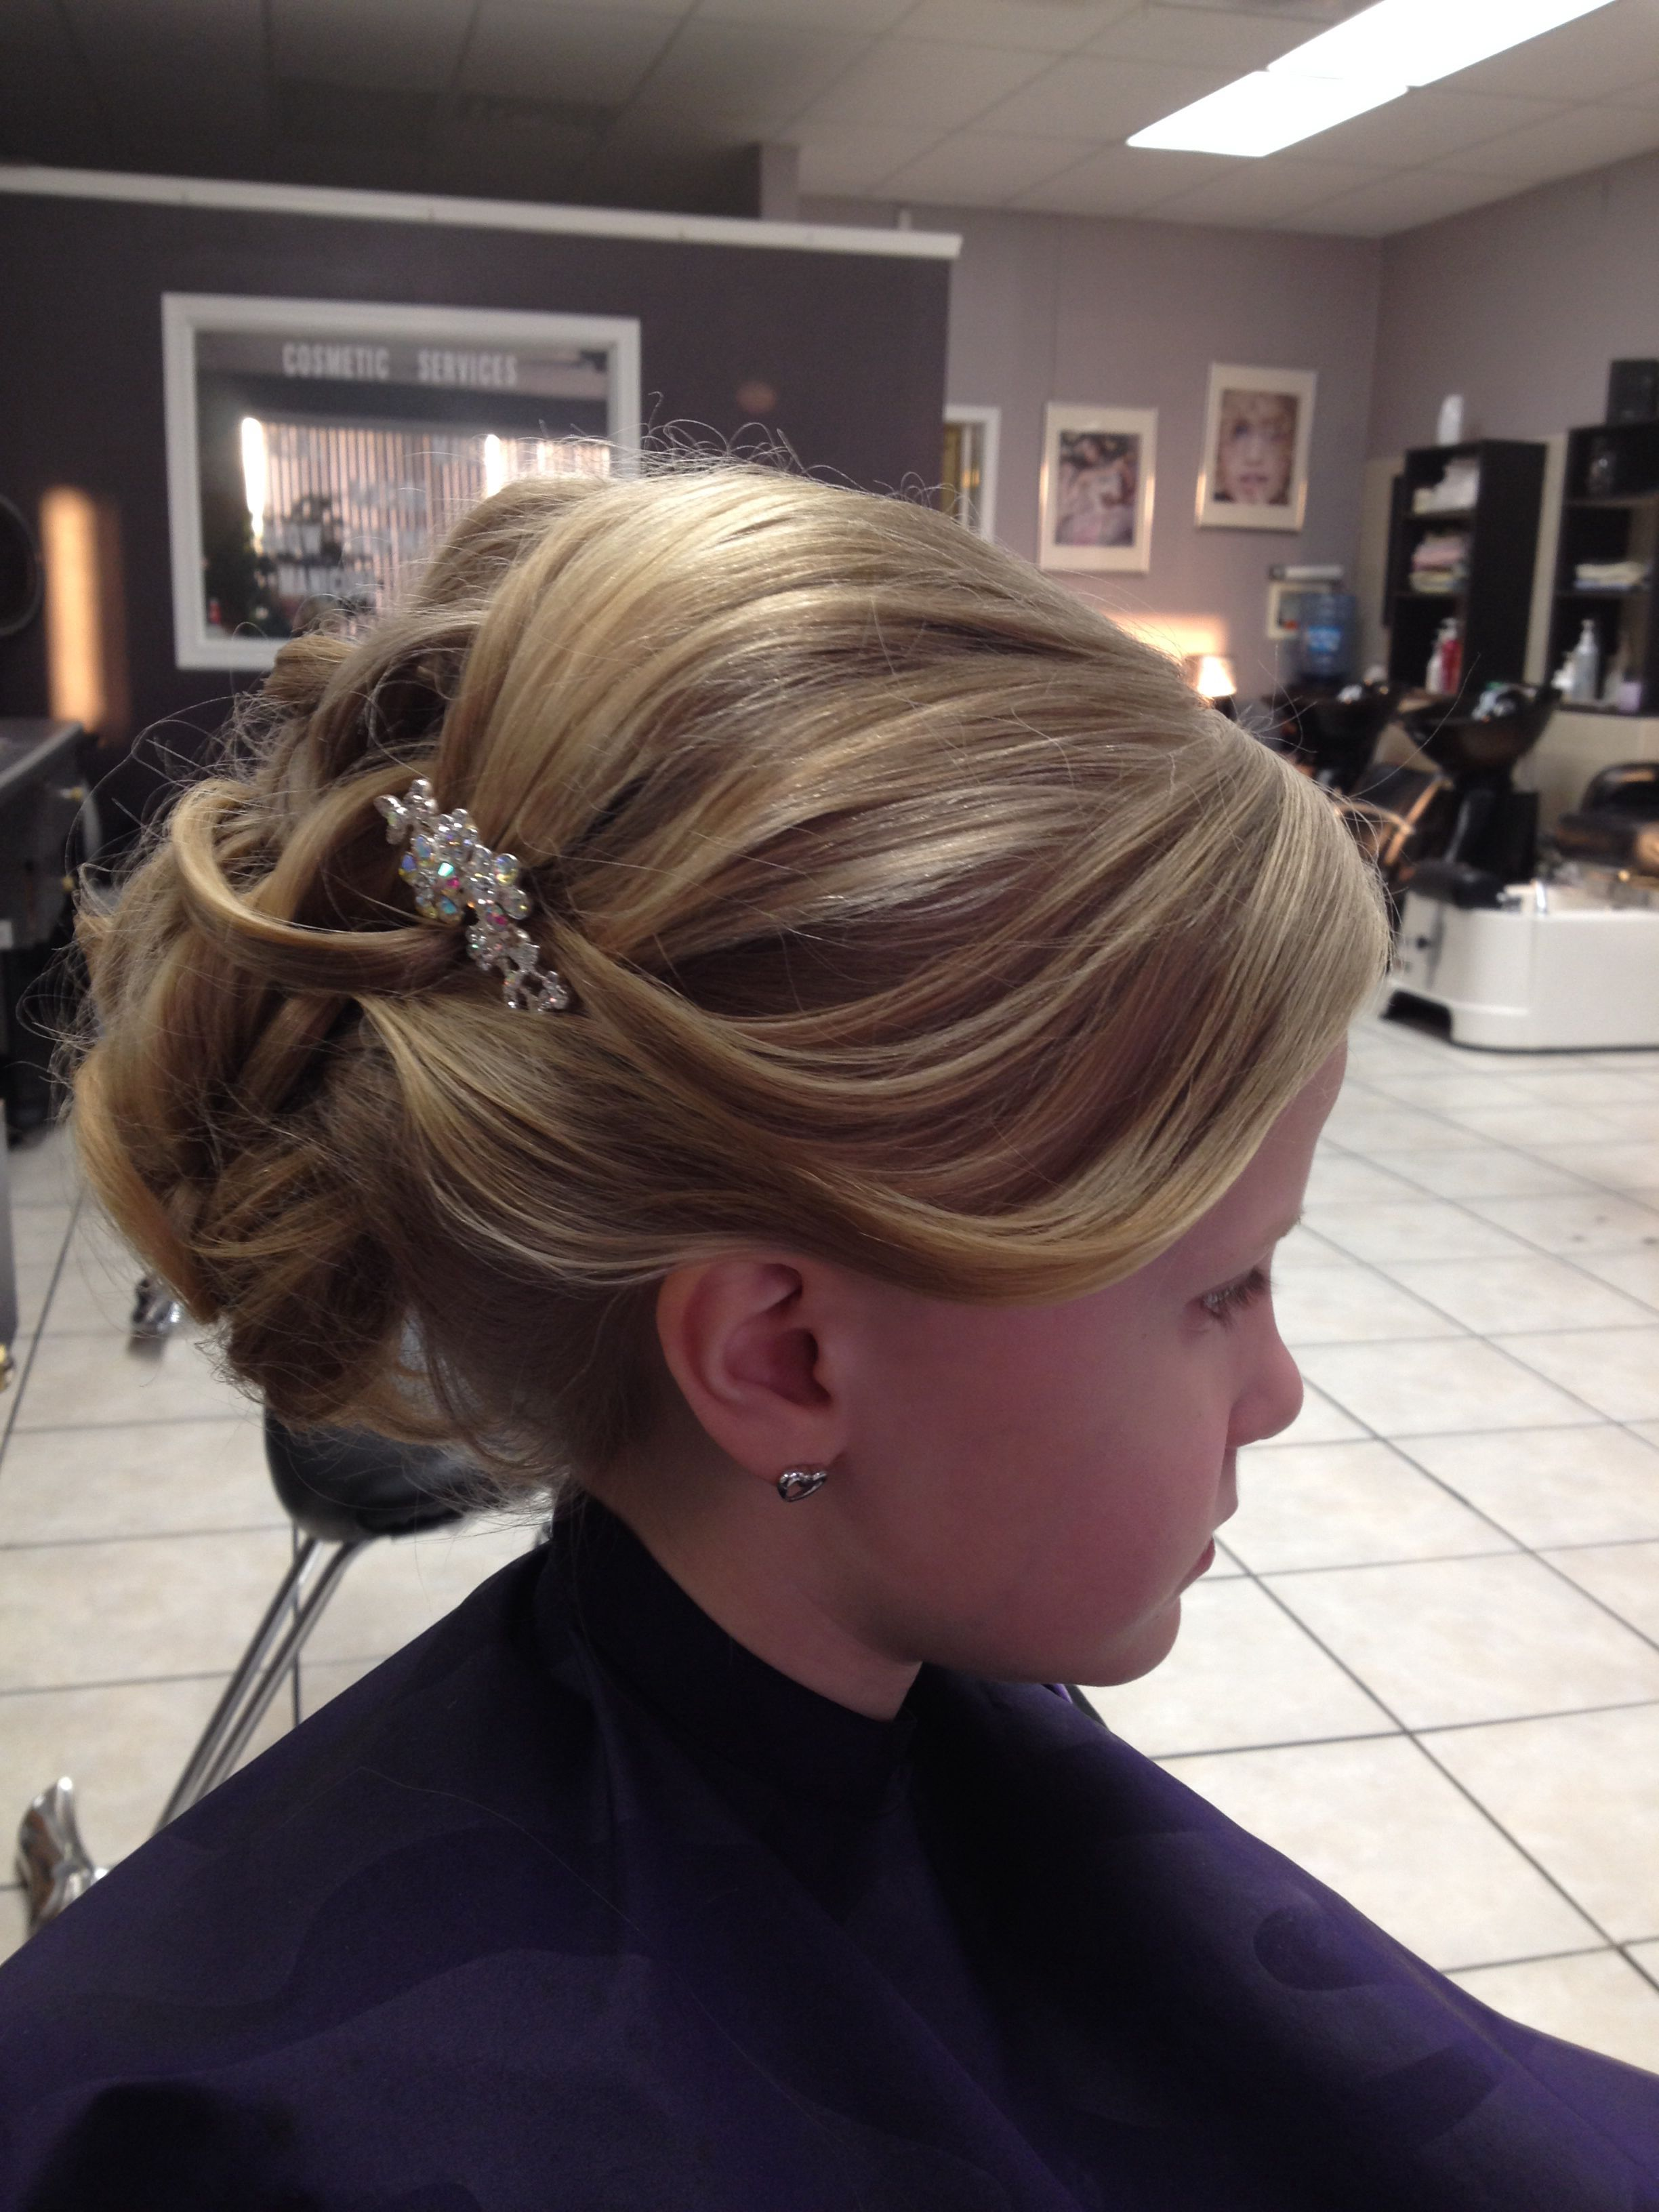 first communion hair for emily. what do you think